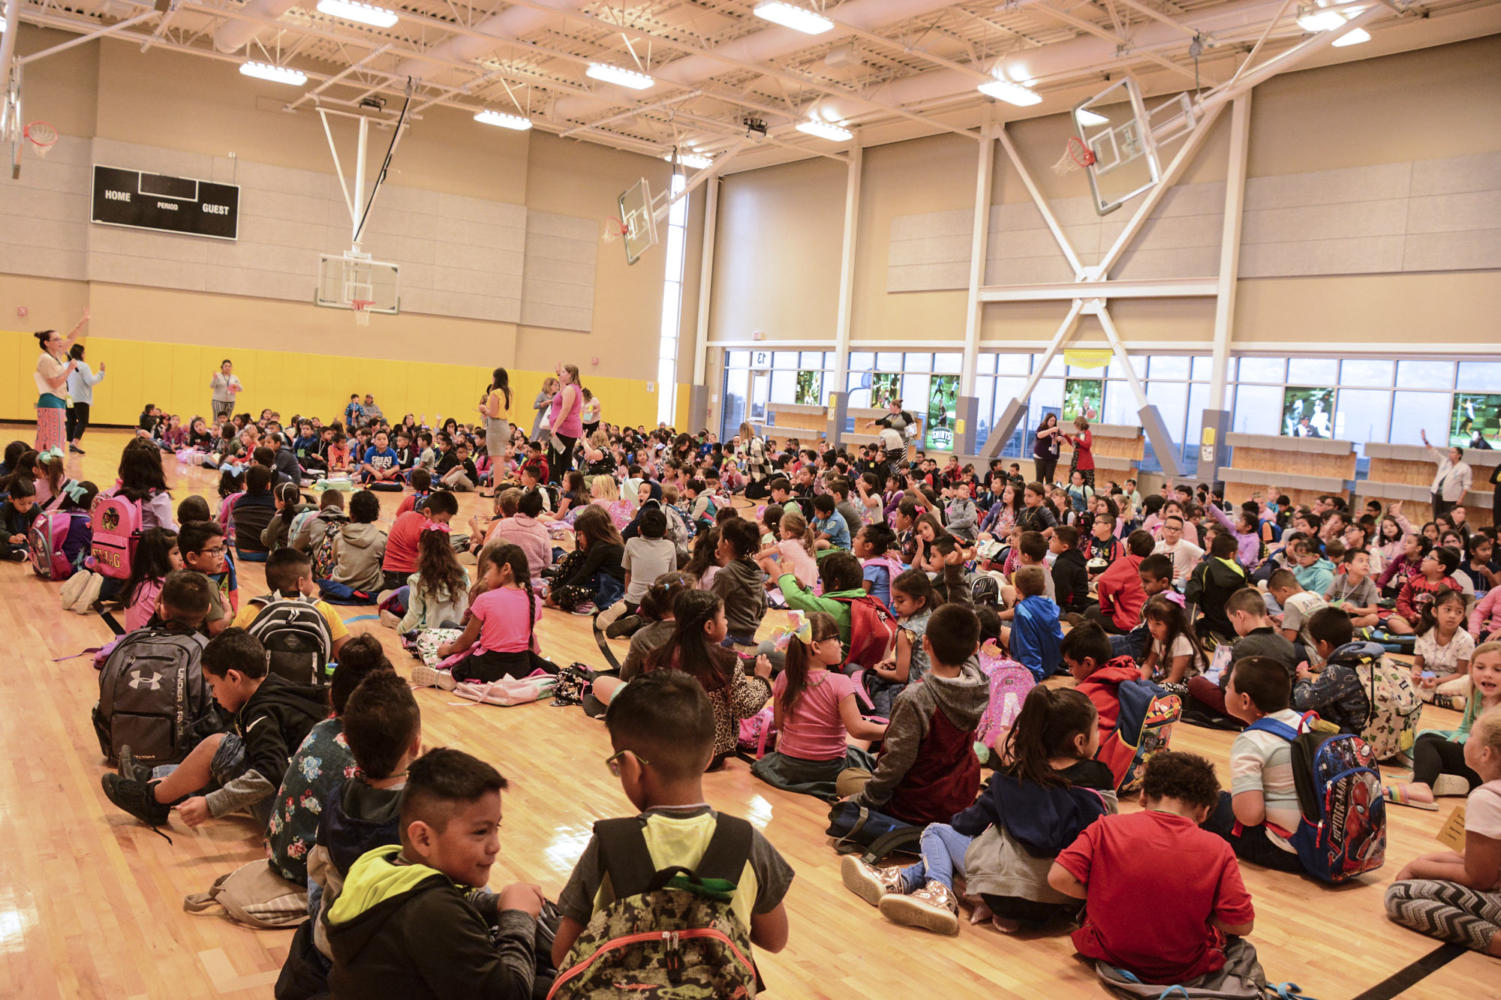 +Prairie+View+students+were+getting+ready+to+be+dismissed+to+class.+After+listening+to+Janeth+B.+Vasquez+adviser+from+SCCC+talked+about+Hispanic+Heritage+Month.